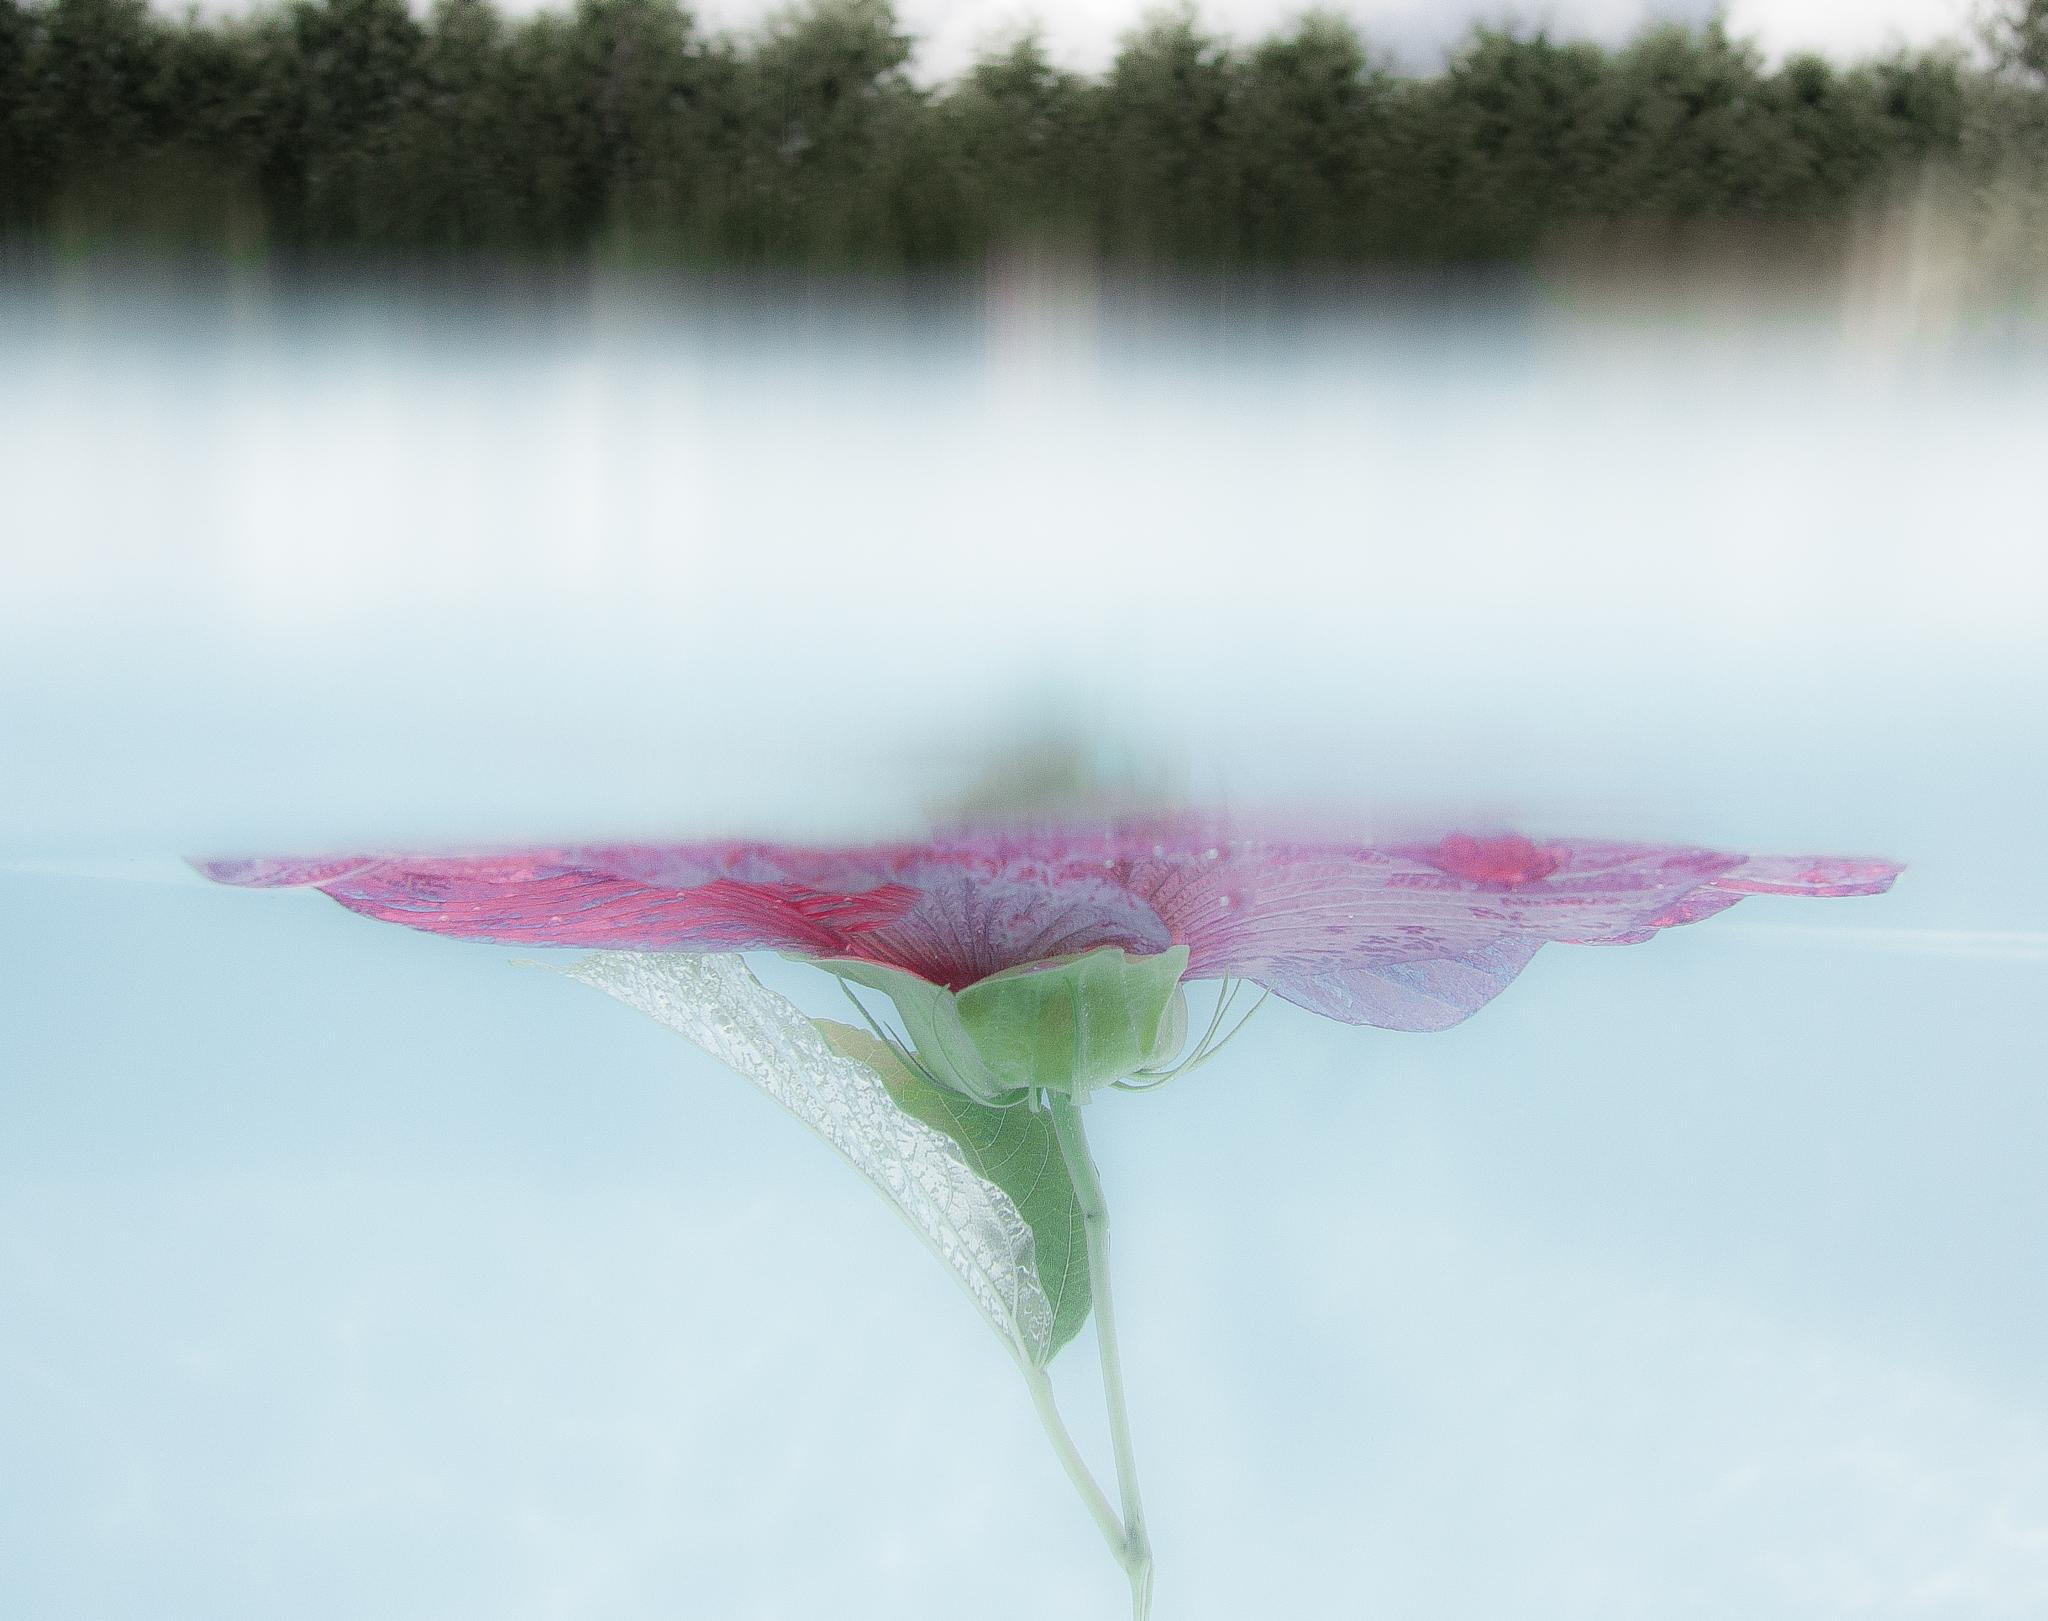 Floating Flower with Trees by SAFIRE PHOTO